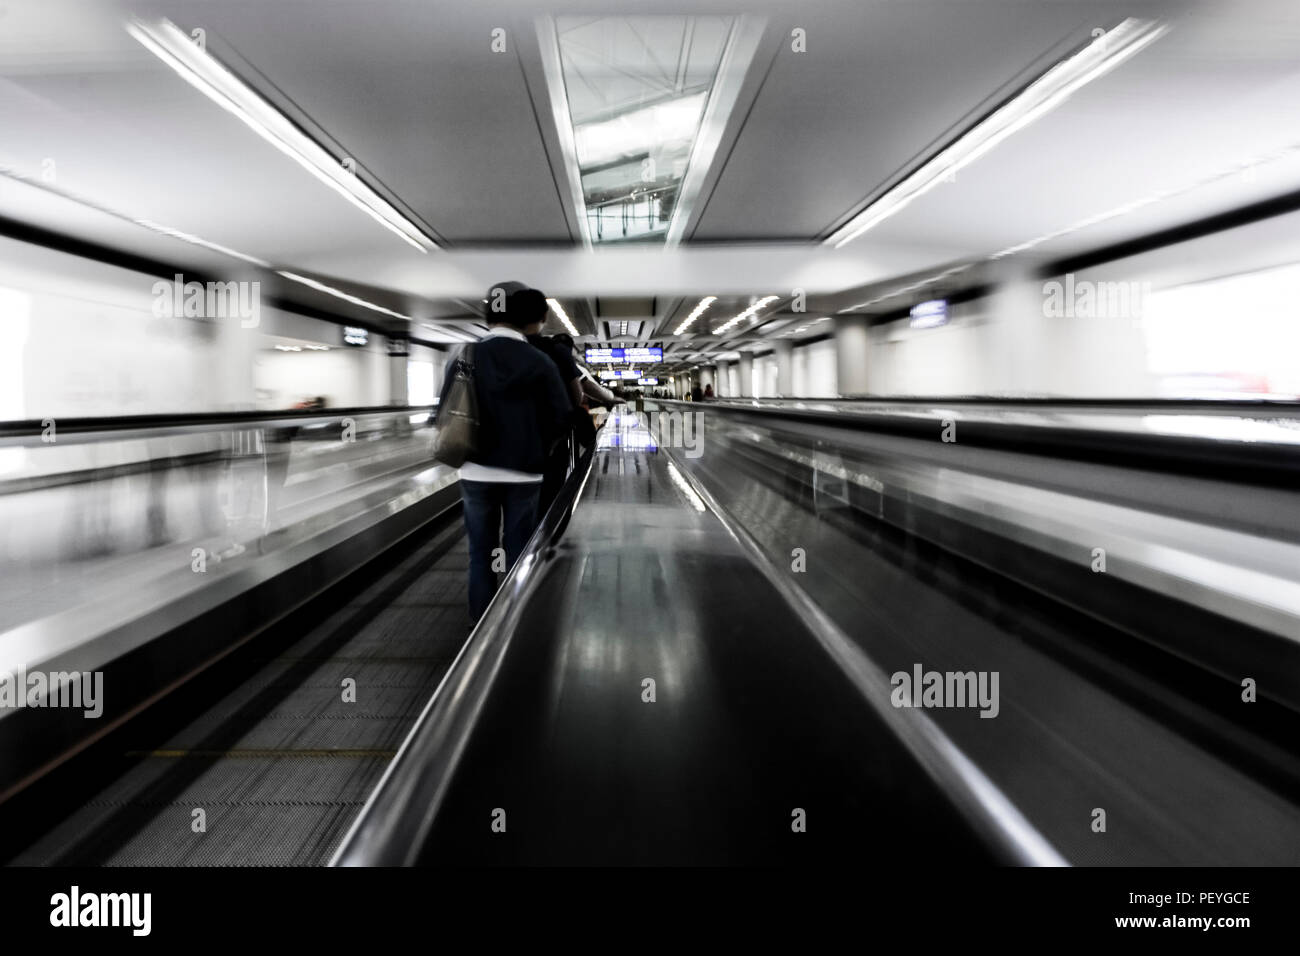 Traveling through airport on escalator symbol for fast pace speed of time jet lag and rush - Stock Image